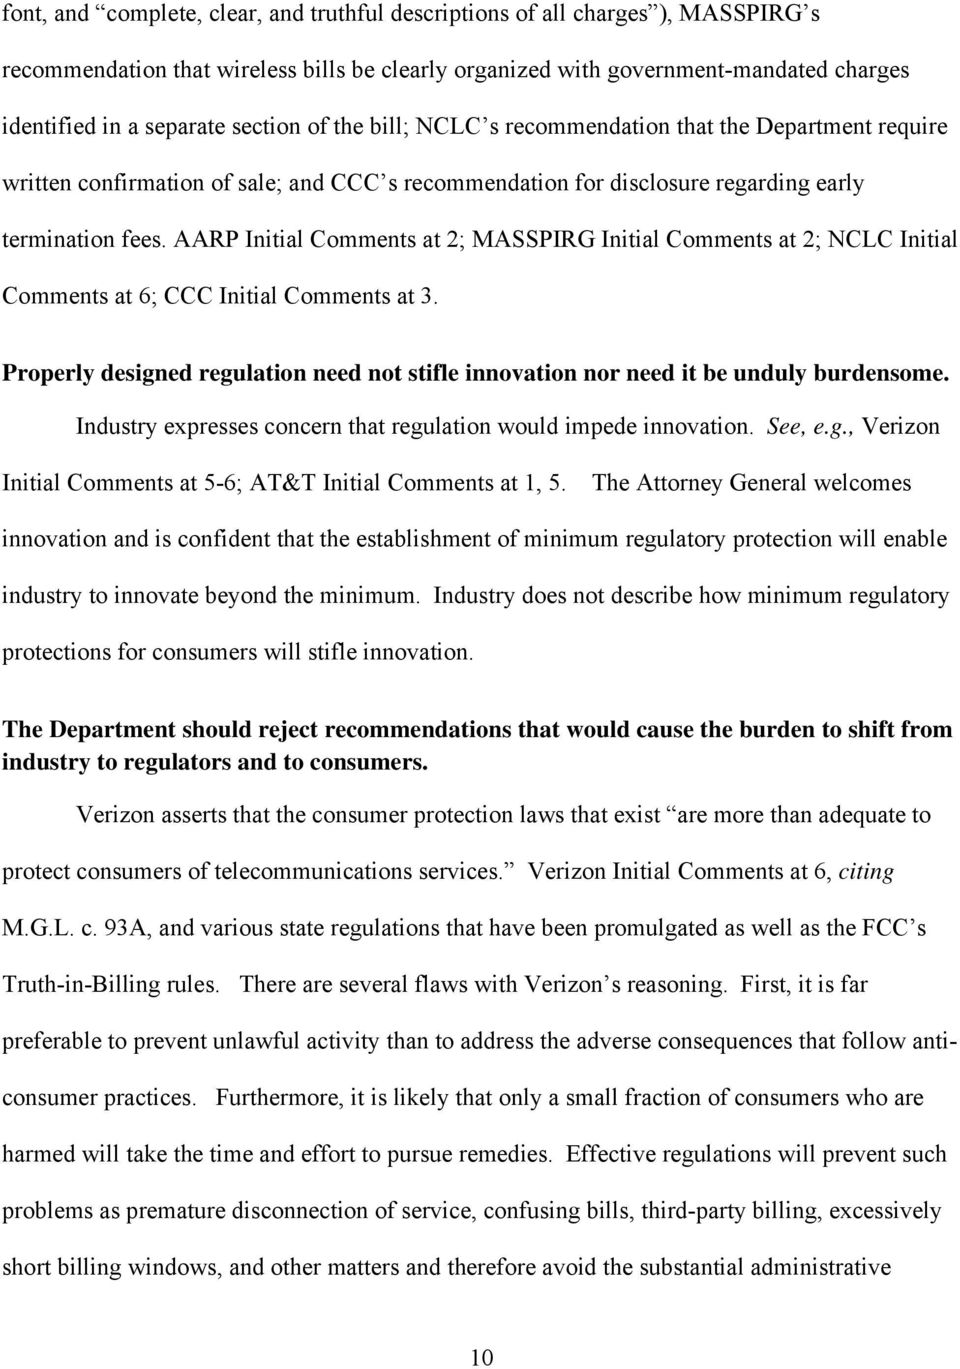 AARP Initial Comments at 2; MASSPIRG Initial Comments at 2; NCLC Initial Comments at 6; CCC Initial Comments at 3.